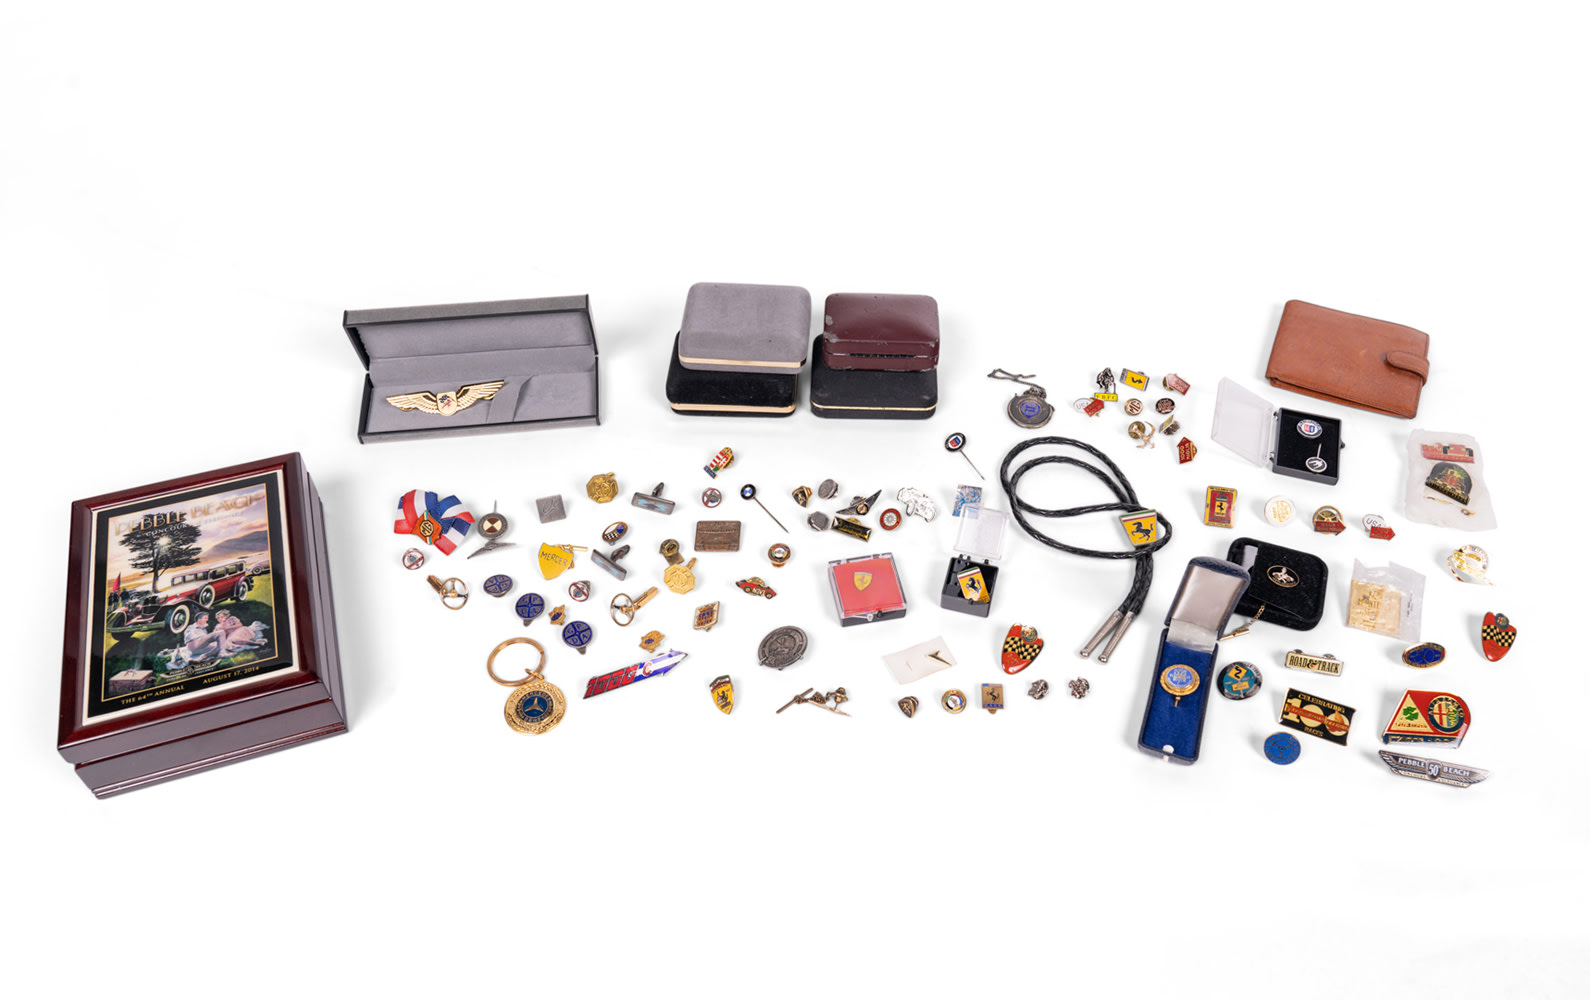 Assorted Pins and Cufflinks